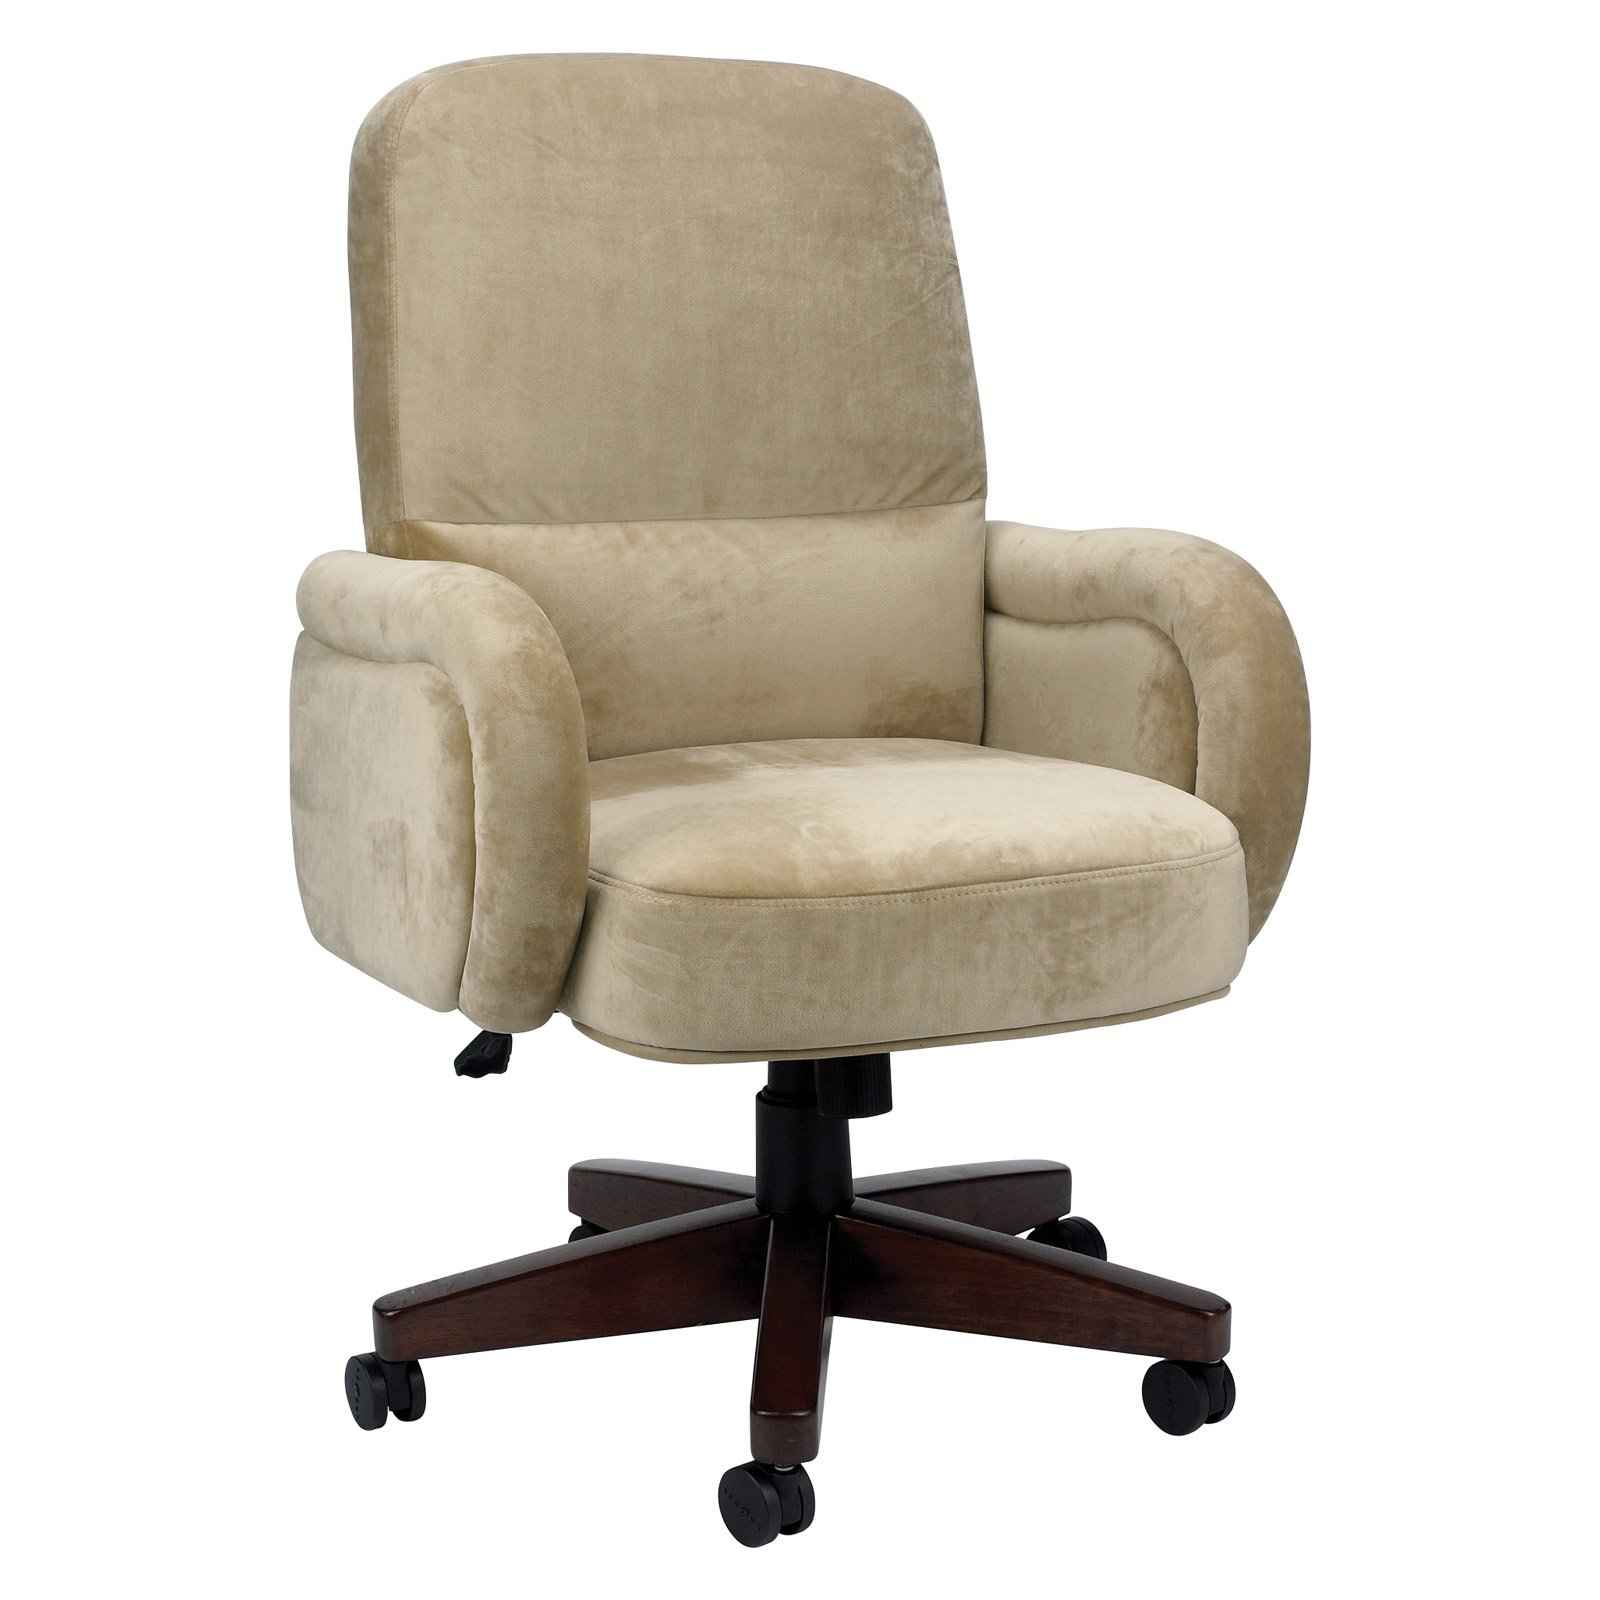 Looking For Chairs Executive Computer Chair For Luxury Look